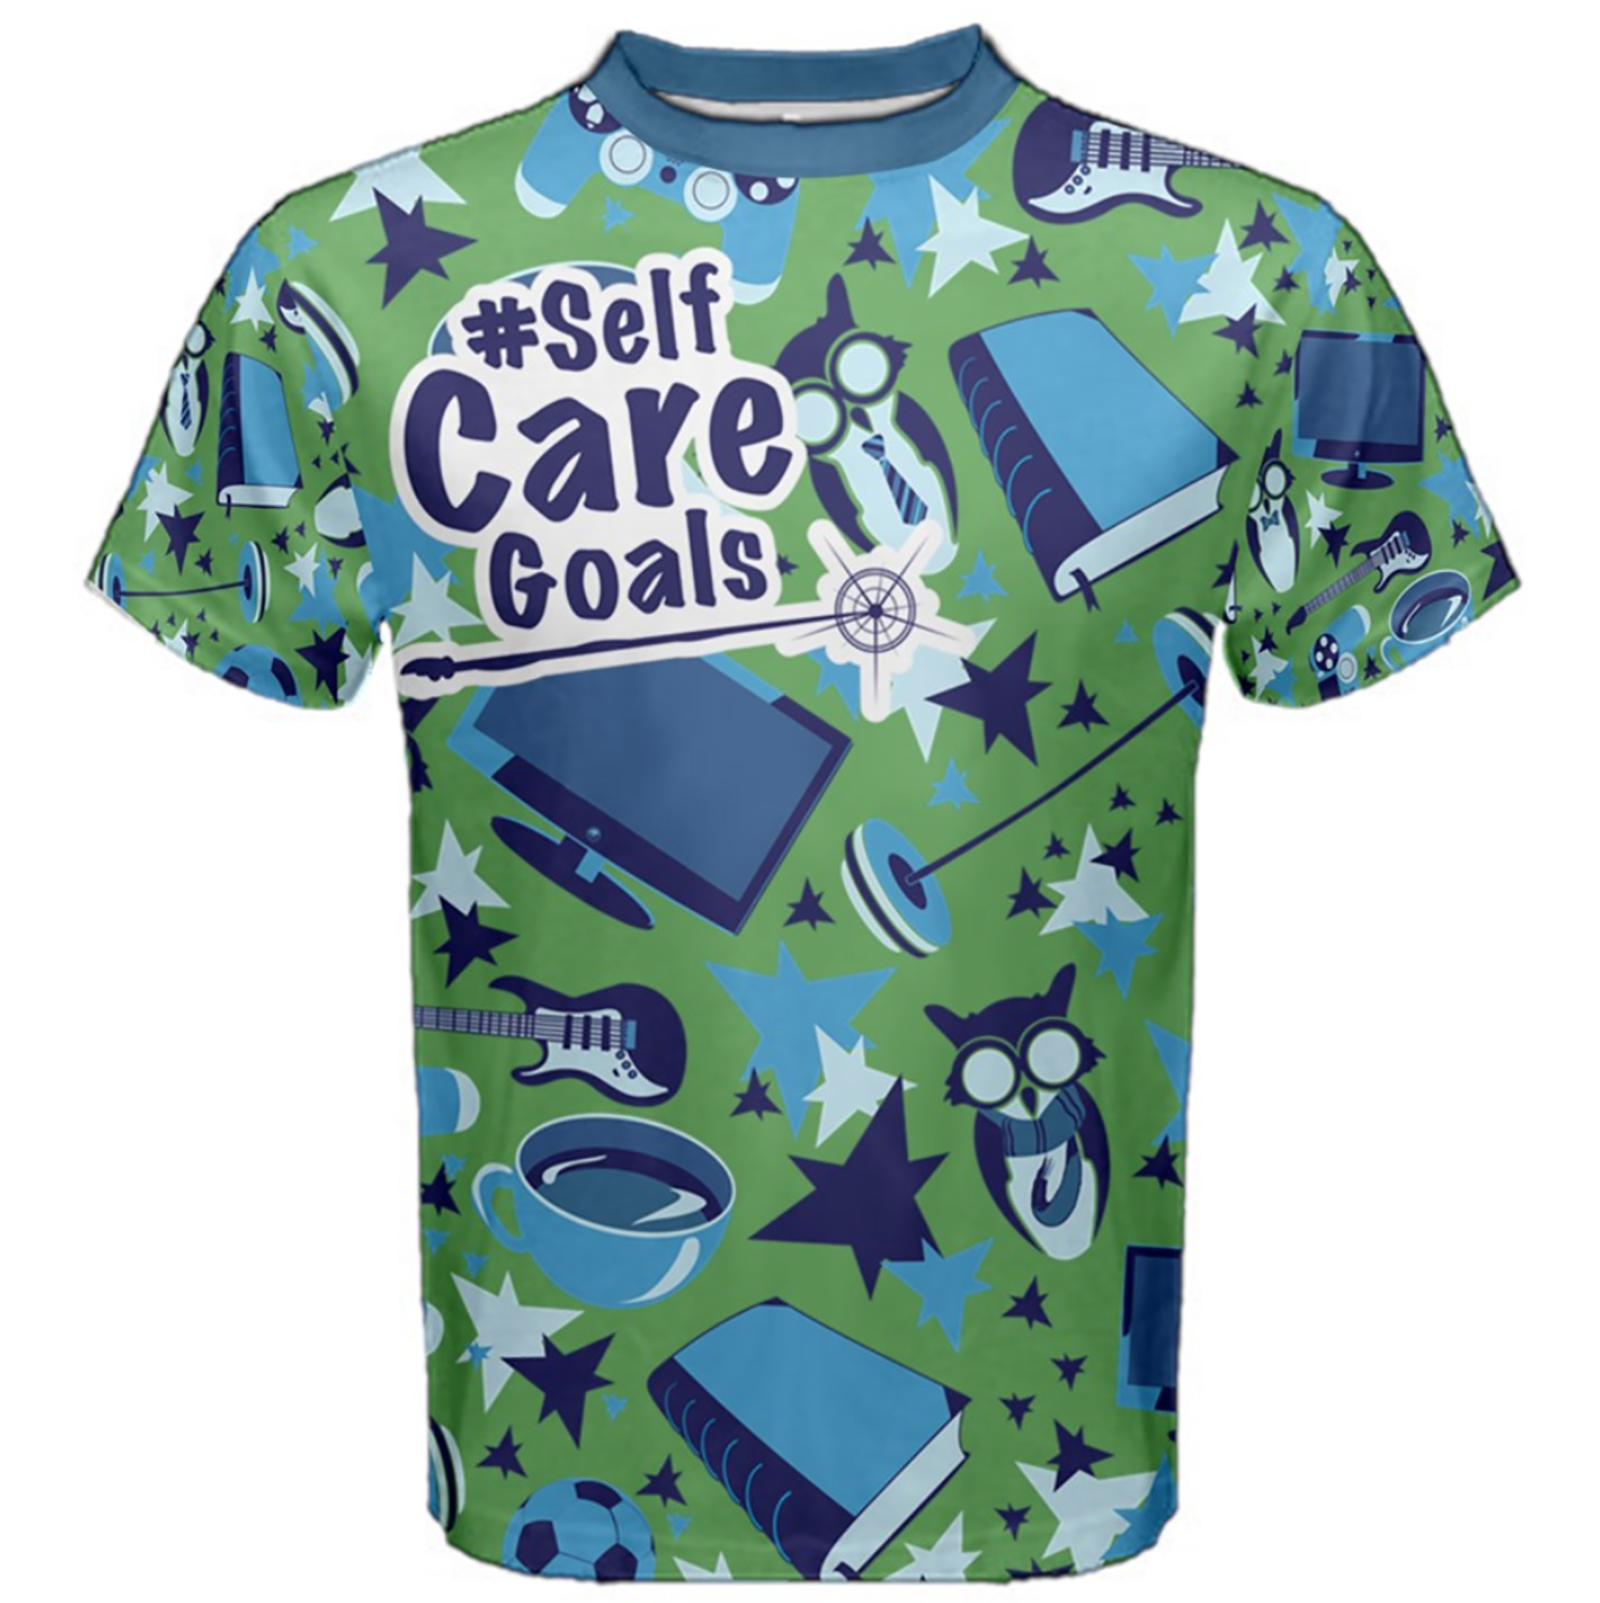 Self-Care Men's Patterned Cotton Tee (Green)